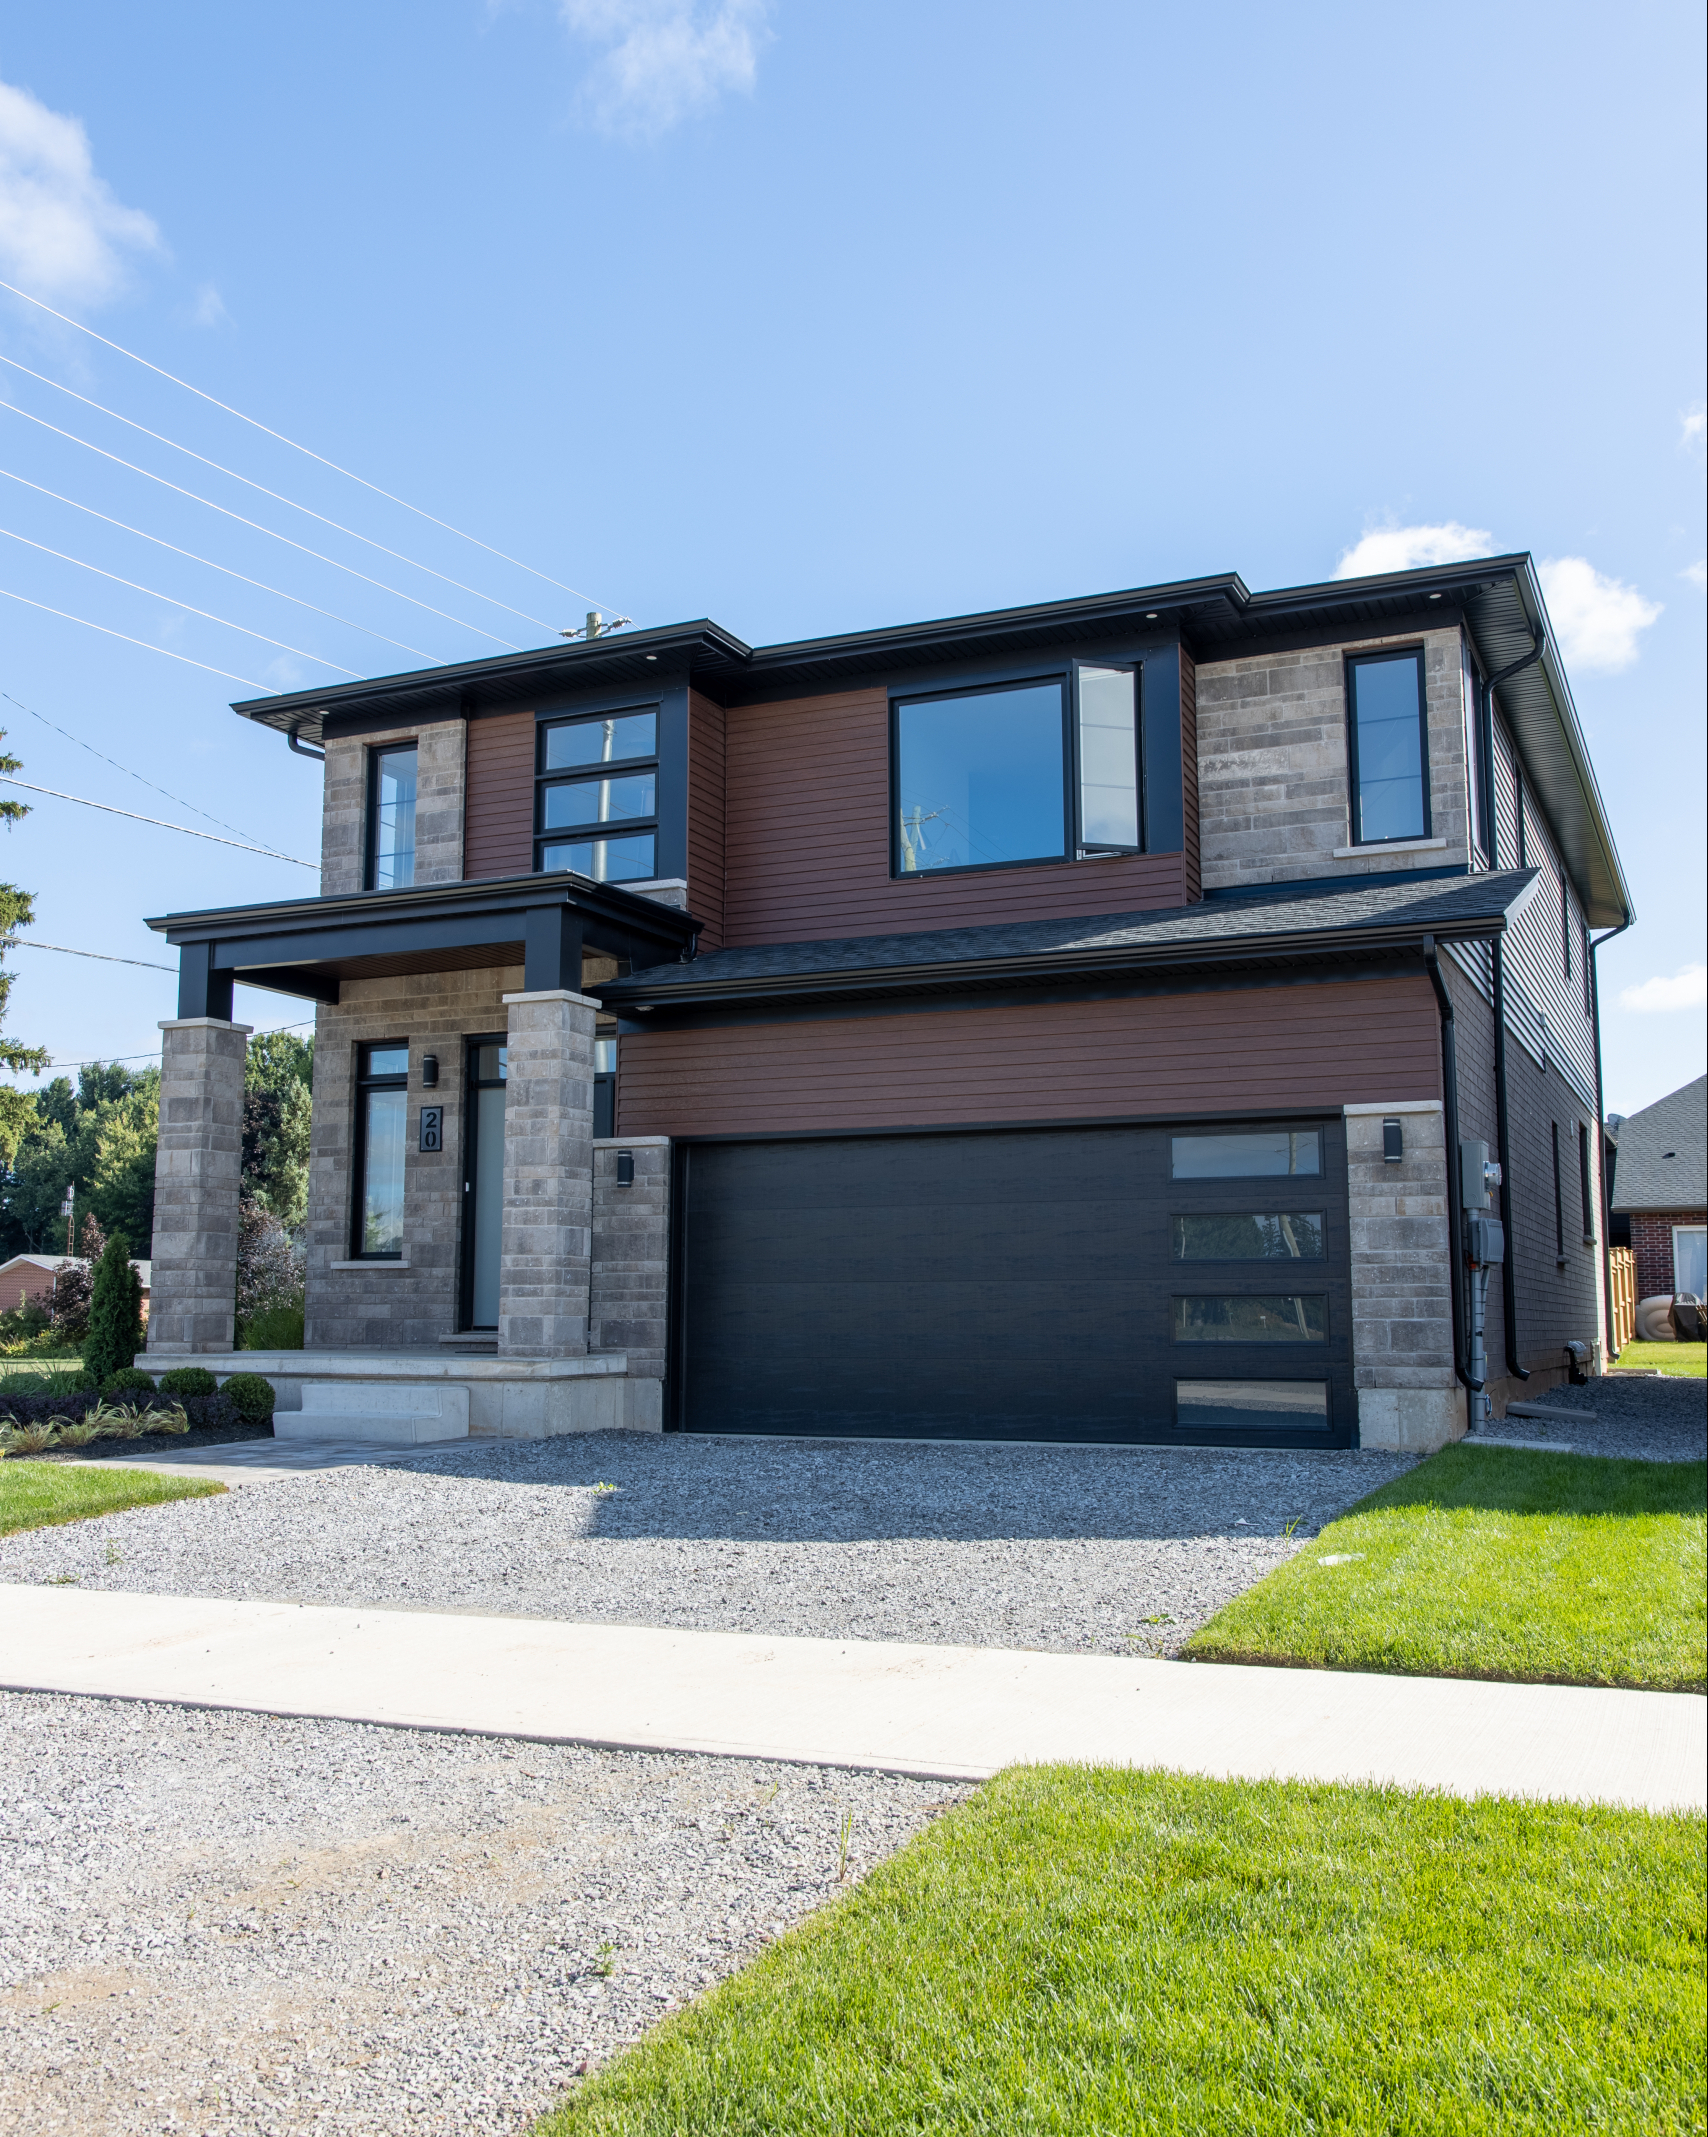 Building Your Dreams - The Mountainview Homes Way